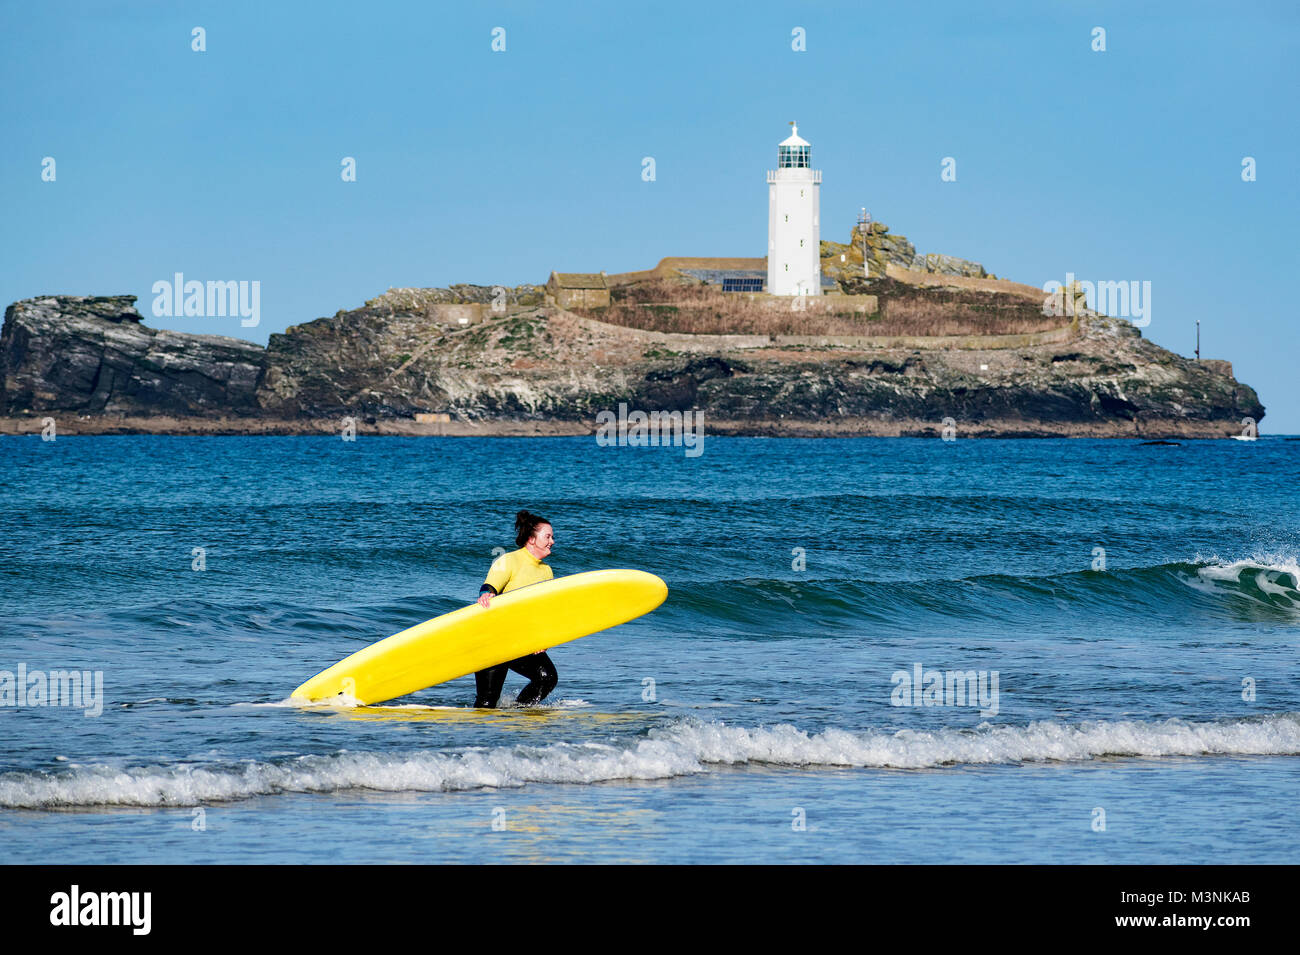 young woman surfer in sea carrying surf board at godrevy, cornwall, england, britain, uk. - Stock Image